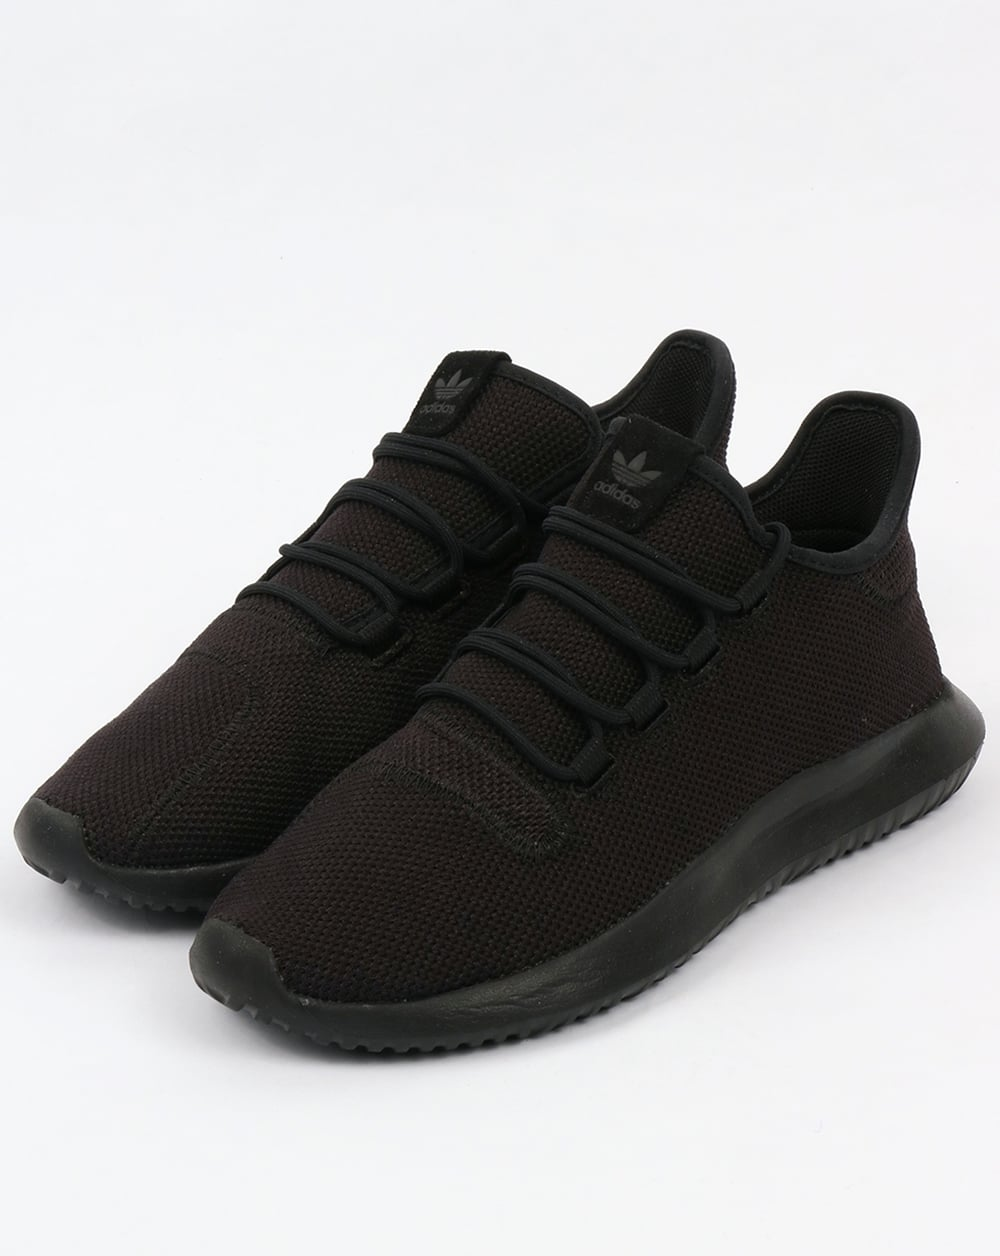 4b60173a0aa6 adidas Trainers Adidas Tubular Shadow Trainers Black